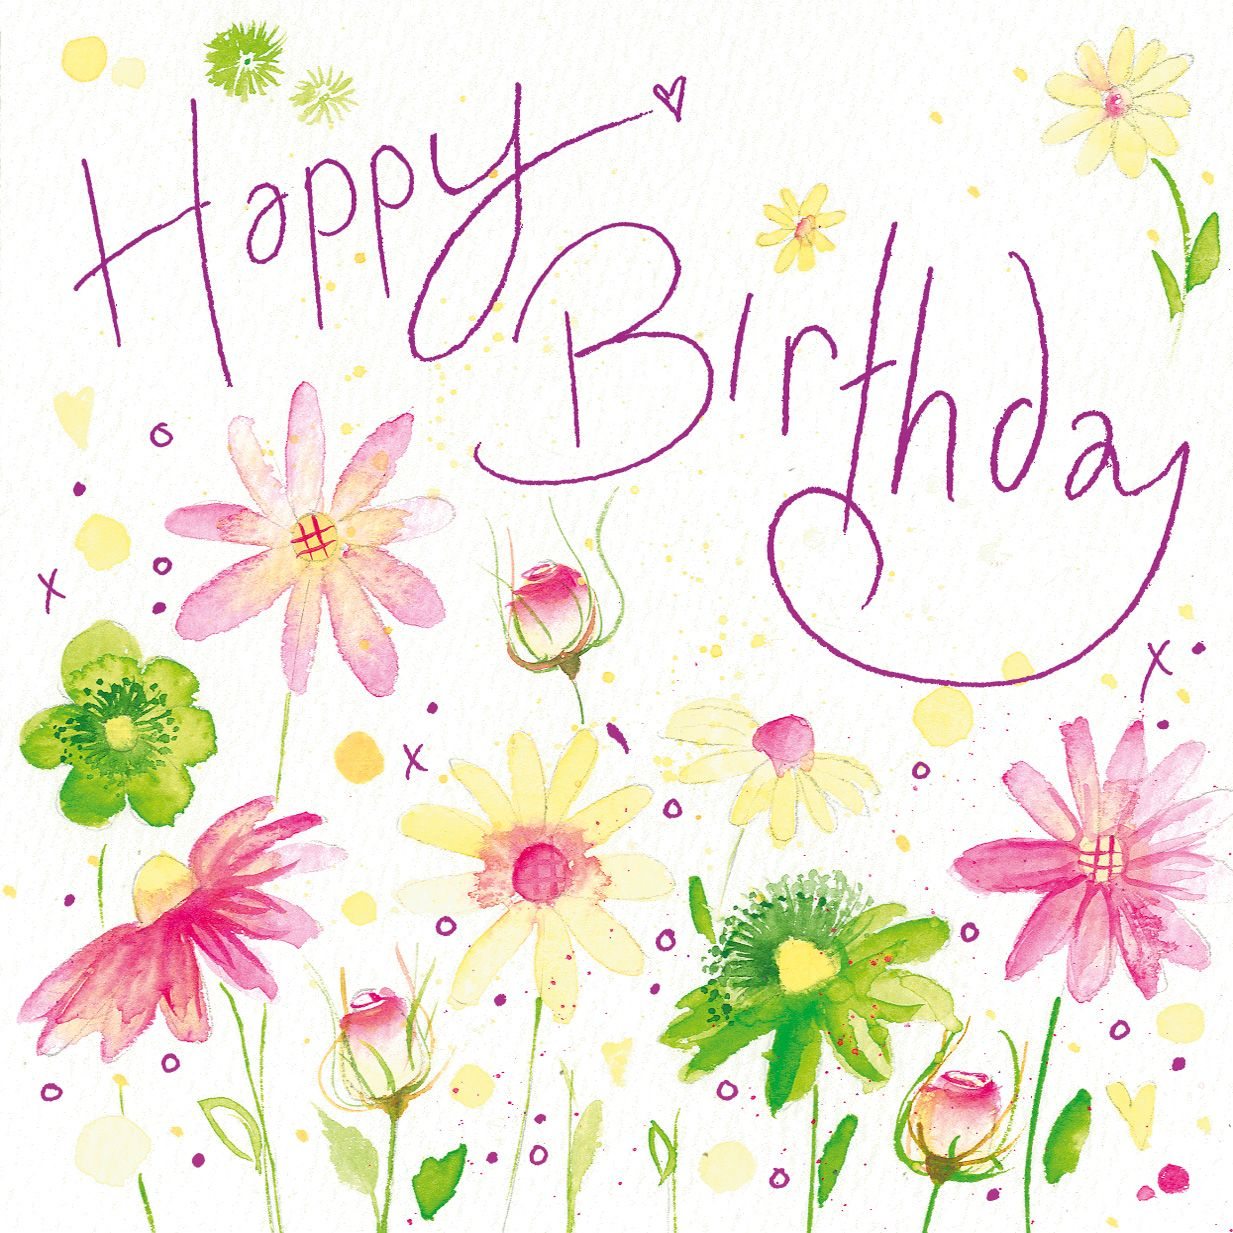 Pin by trudi on happy birthday pinterest happy happy birthday floral greetings cards by lyn thompson features pink foil bookmarktalkfo Image collections